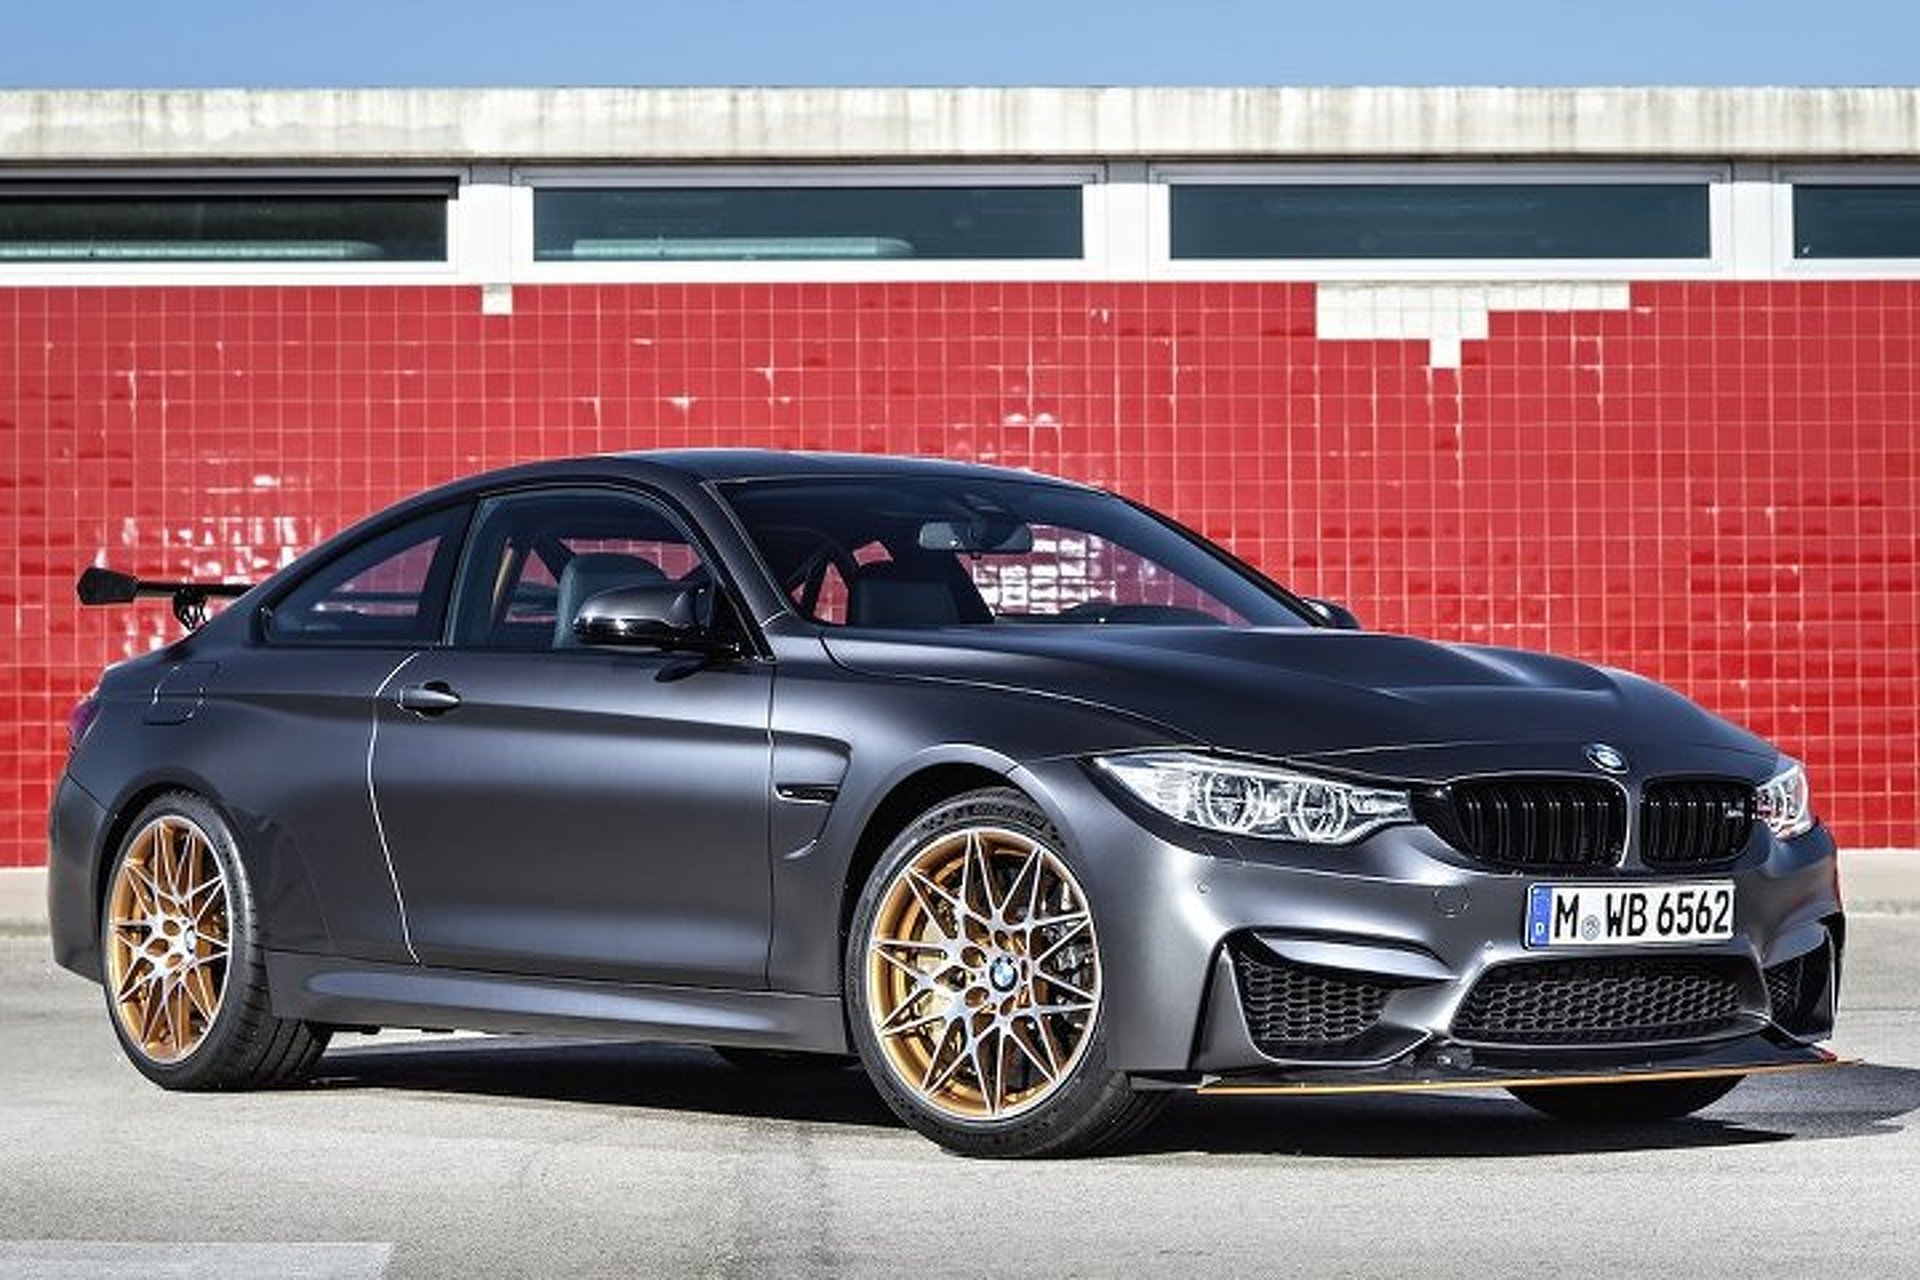 Attractive BMW M4 GTS Uses Water Injection System To Make Track Day Power Good Ideas